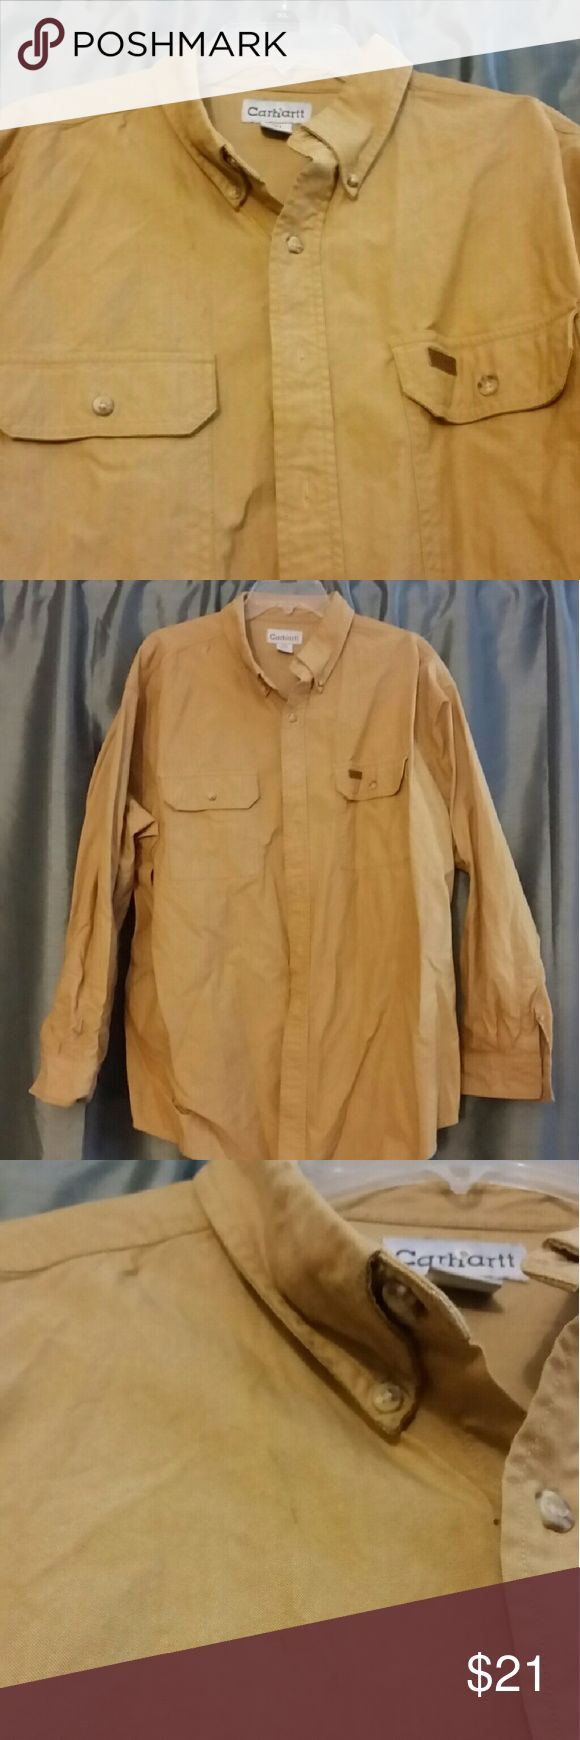 Carhartt Work Shirt Khaki long-sleeved 100% cotton work shirt. Button-down collar. Small smudge on chest (shown in picture) Carhartt Shirts